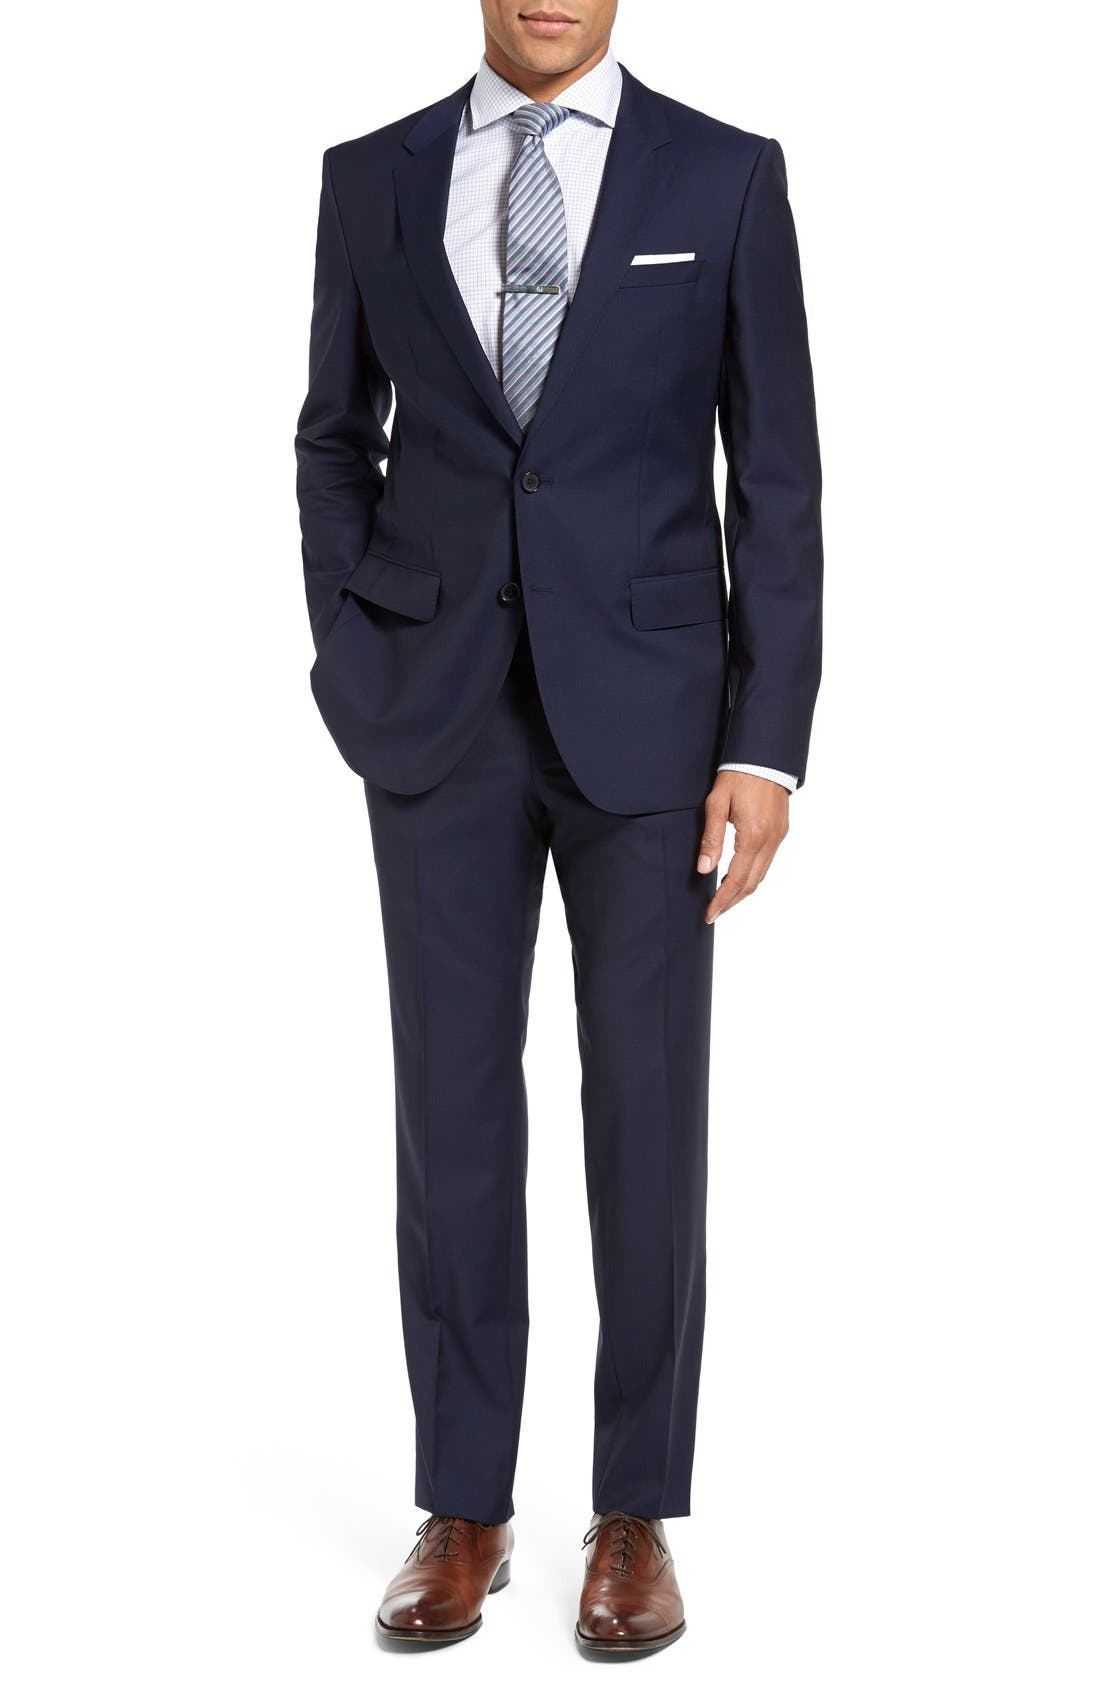 Huge/Genius Trim Fit Navy Wool Suit,                             Main thumbnail 1, color,                             Navy